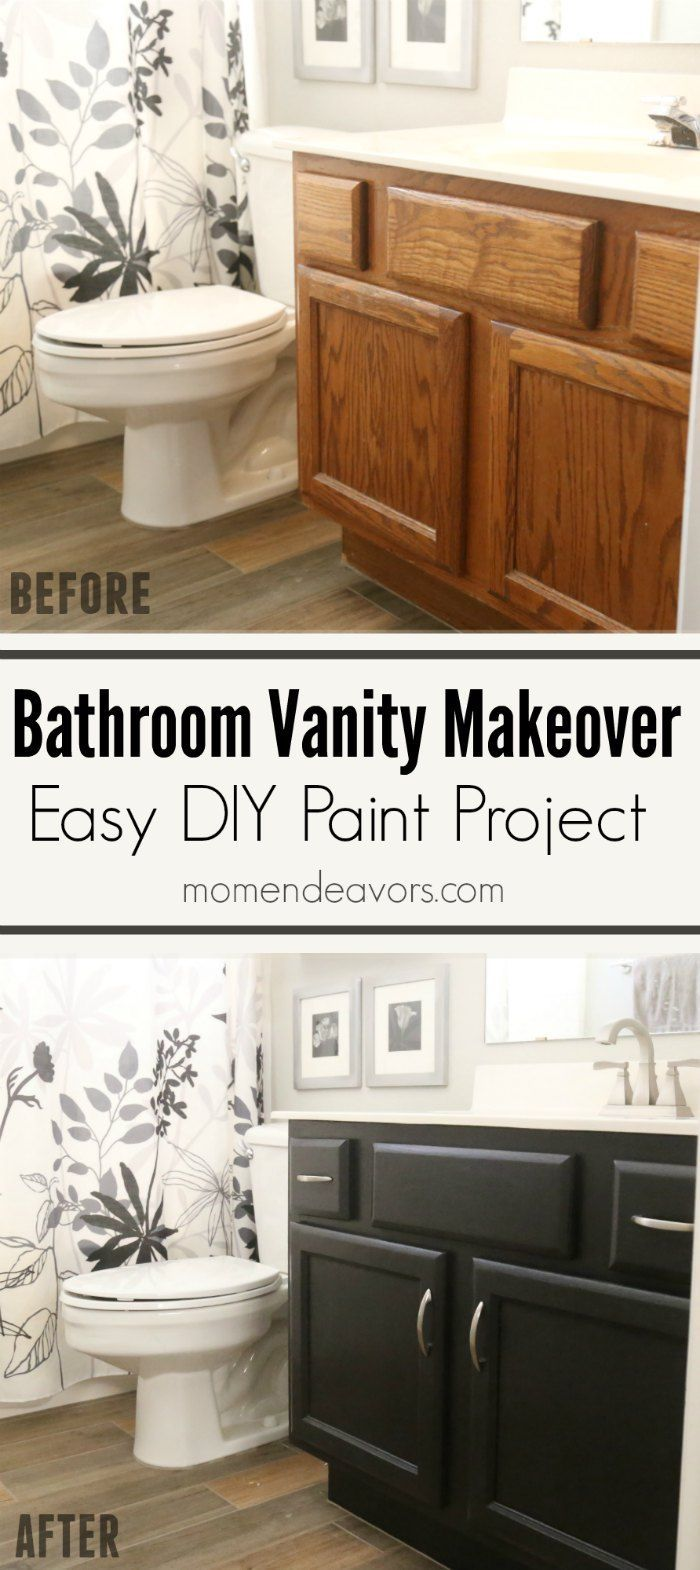 bathroom vanity makeover easy diy home paint project paint suggestions and easy diy tutorial - Painted Bathroom Cabinets Before And After